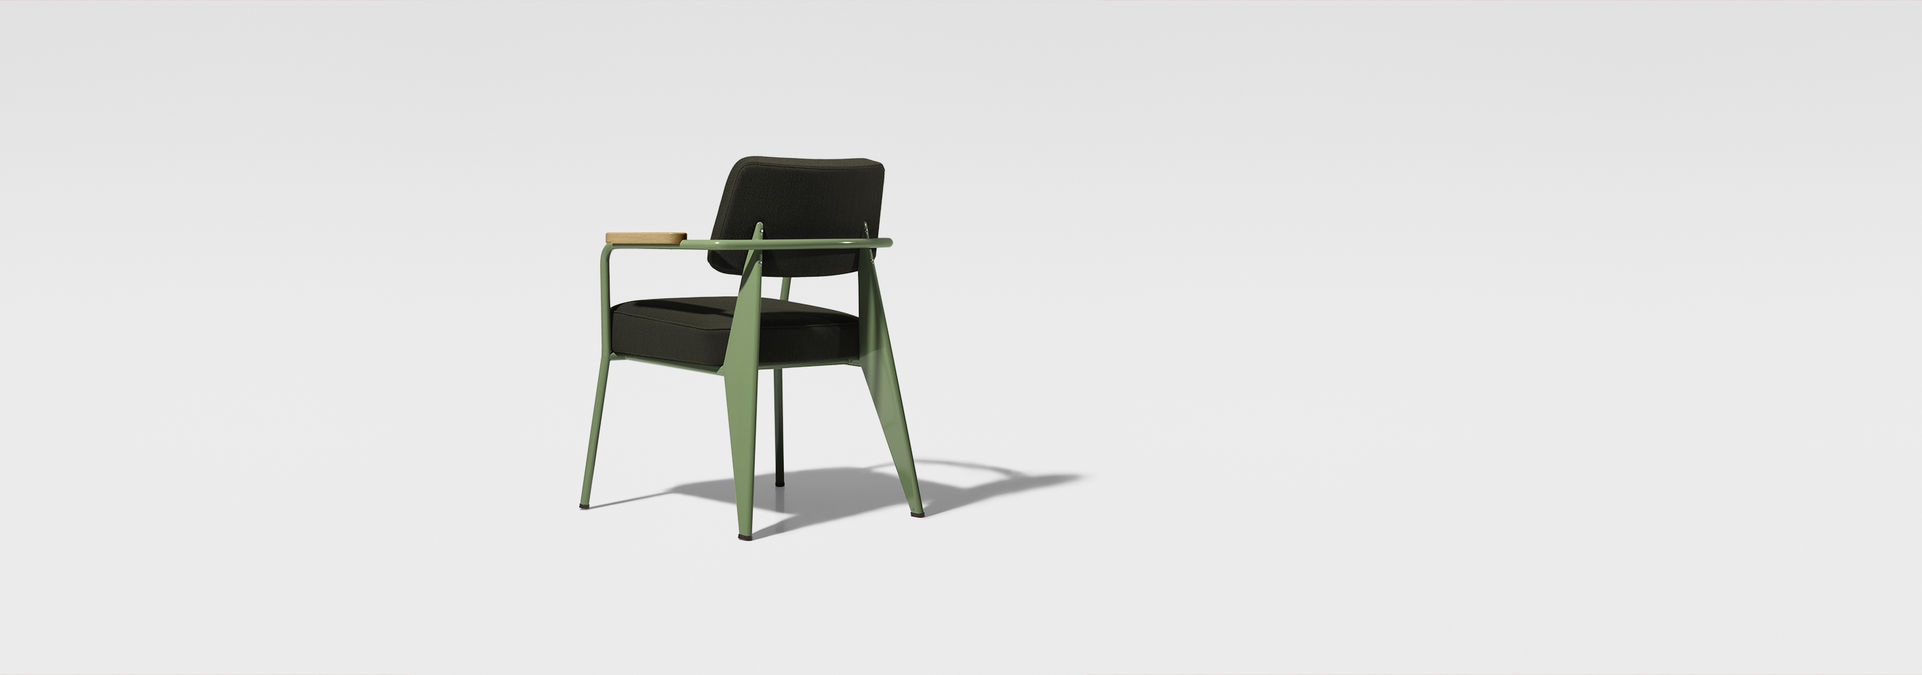 Prouve Raw Office Edition Fauteuil Direction Tissu 1951 Glides For Carpet G Star Raw